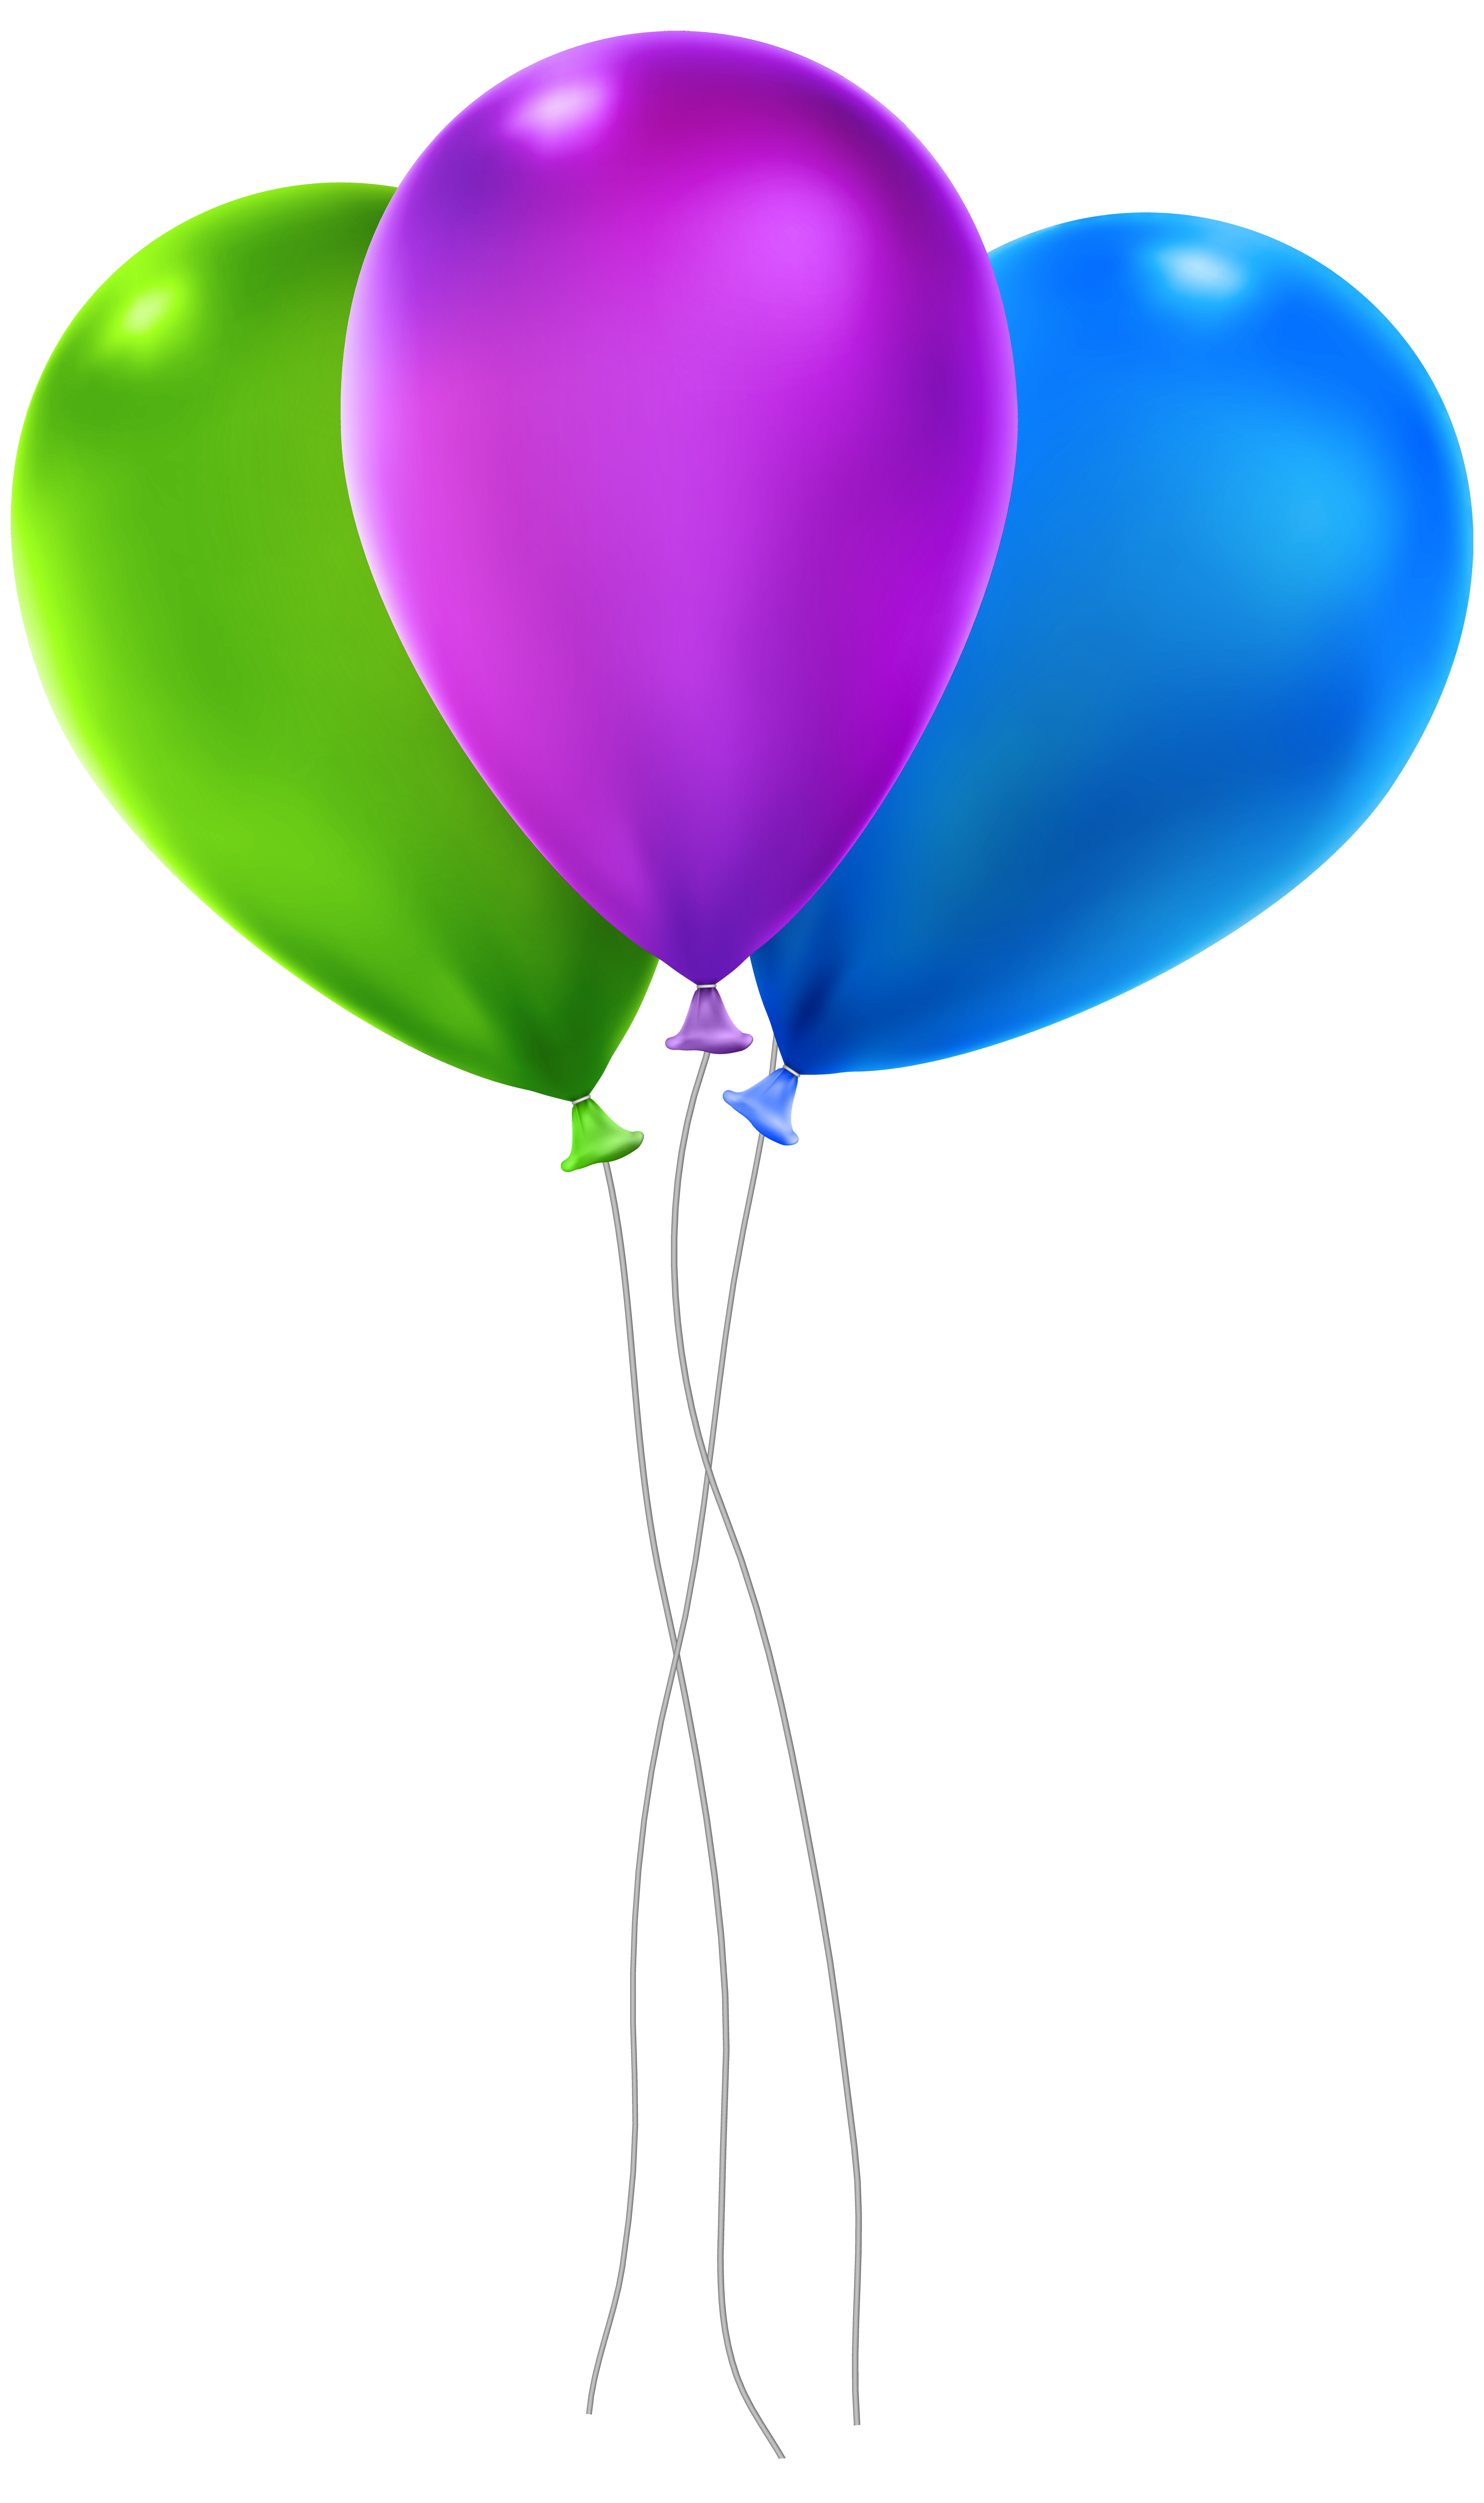 Clipart balloon spring. Balloons png image gallery